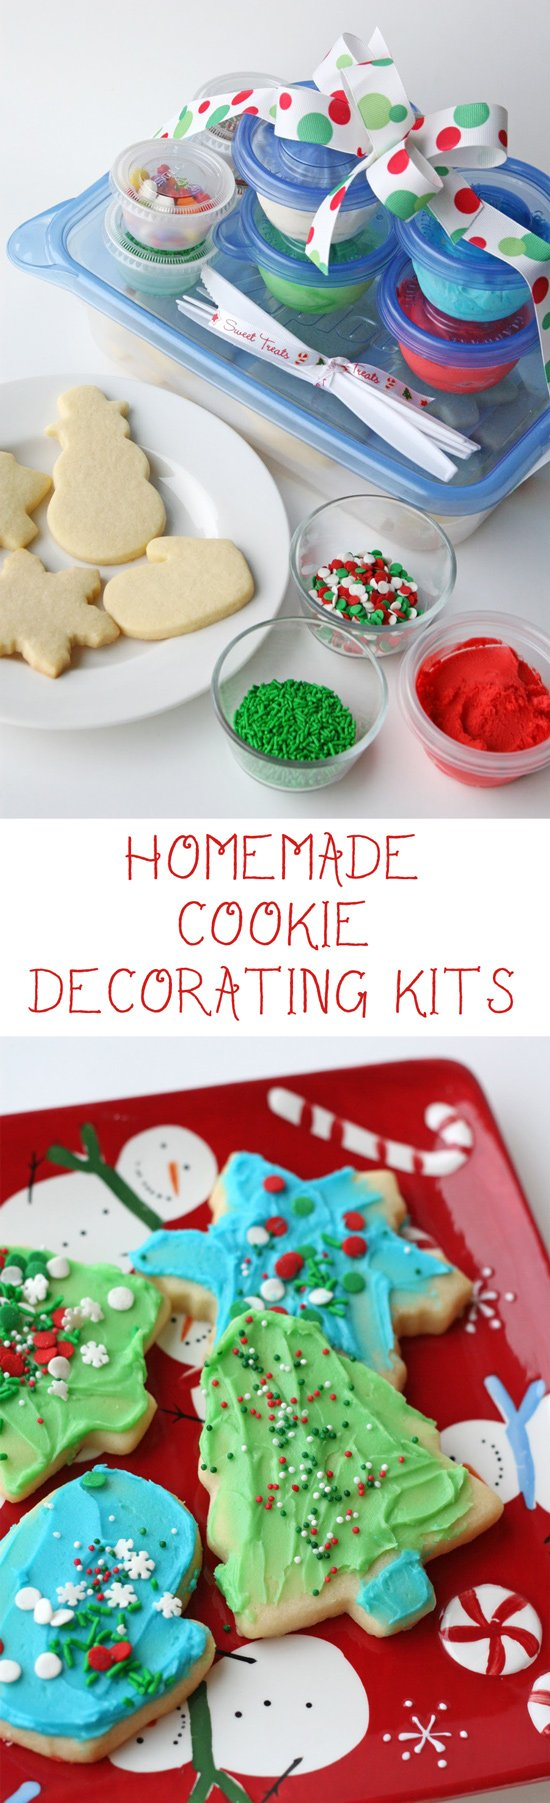 Homemade Cookie Decorating Kits - This is the perfect gift for families with kids!